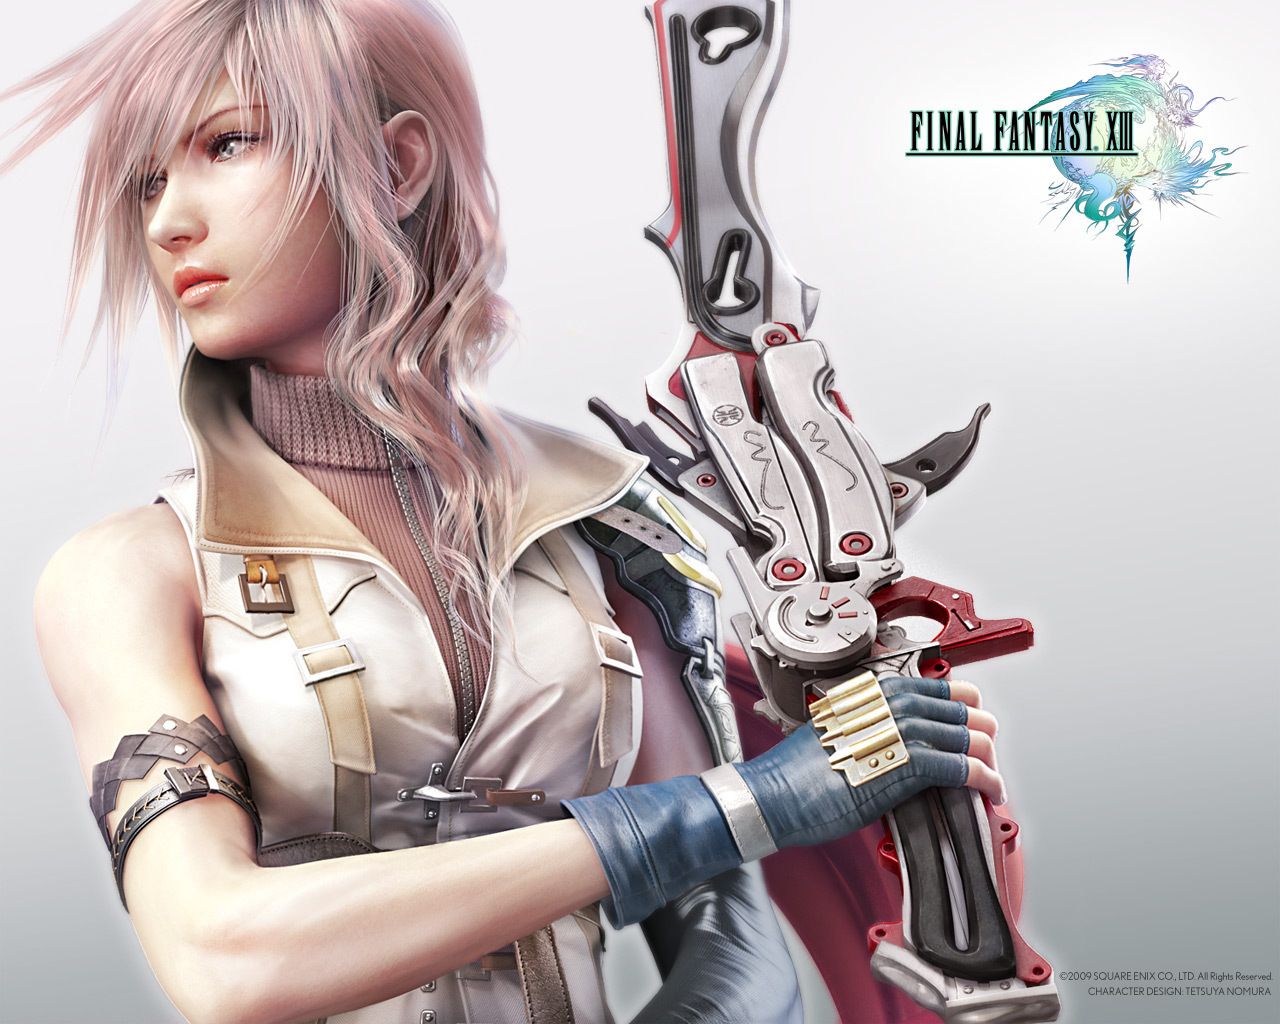 Bestwall Final Fantasy Lightning Returns Wallpapers